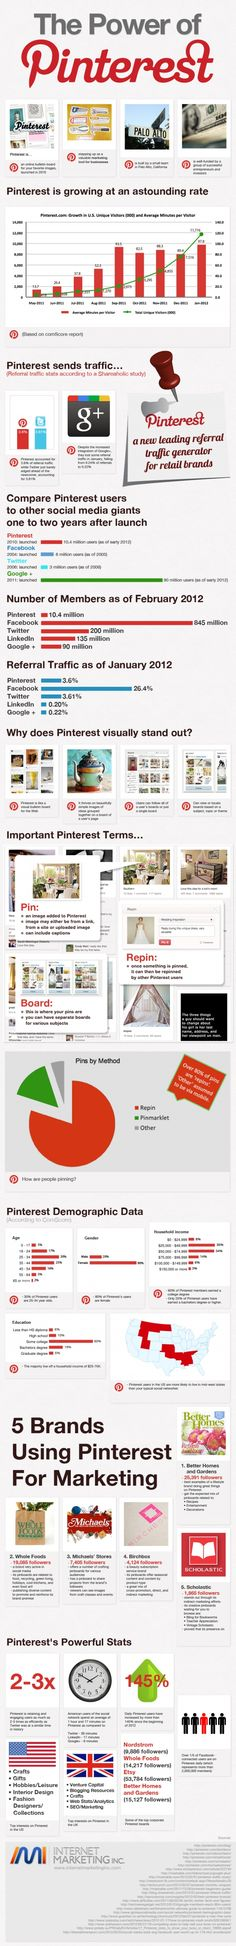 very nice #infographic about #pinterest